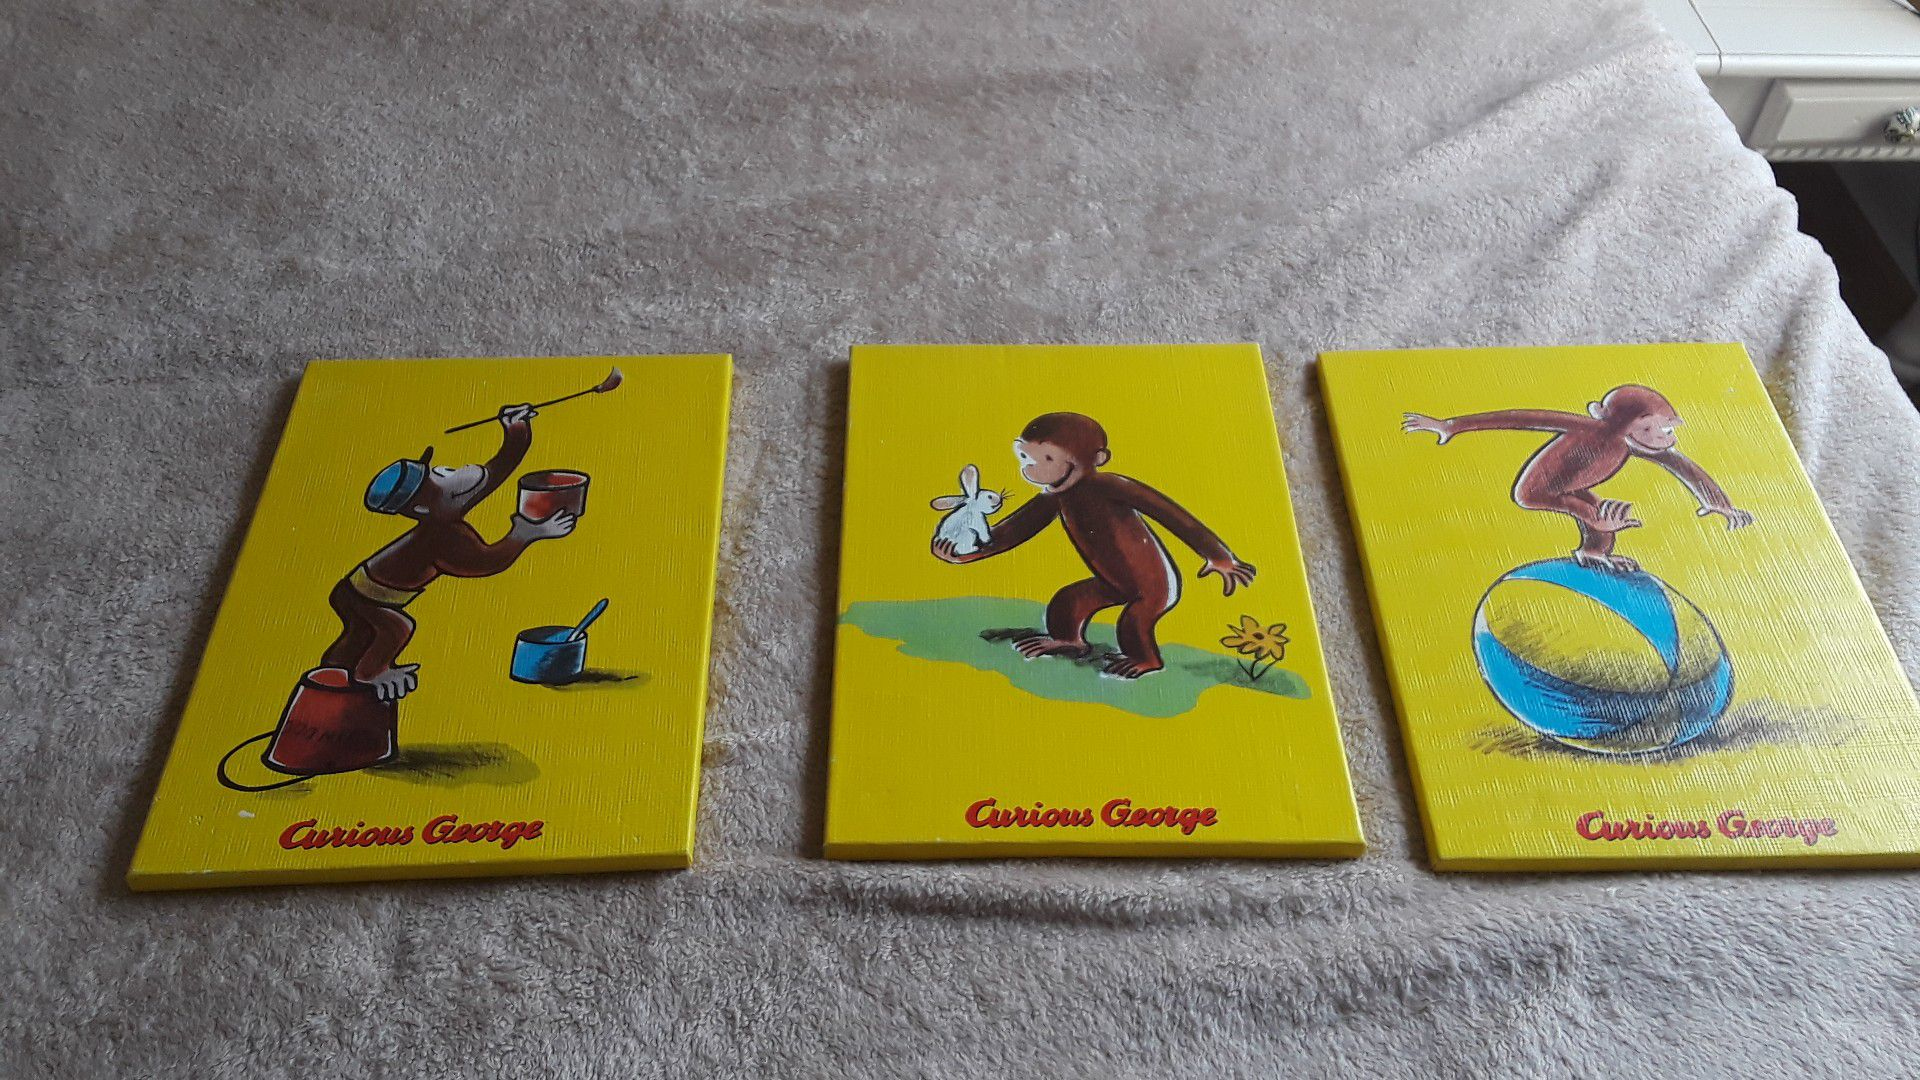 Curious George Paintings on Canvas